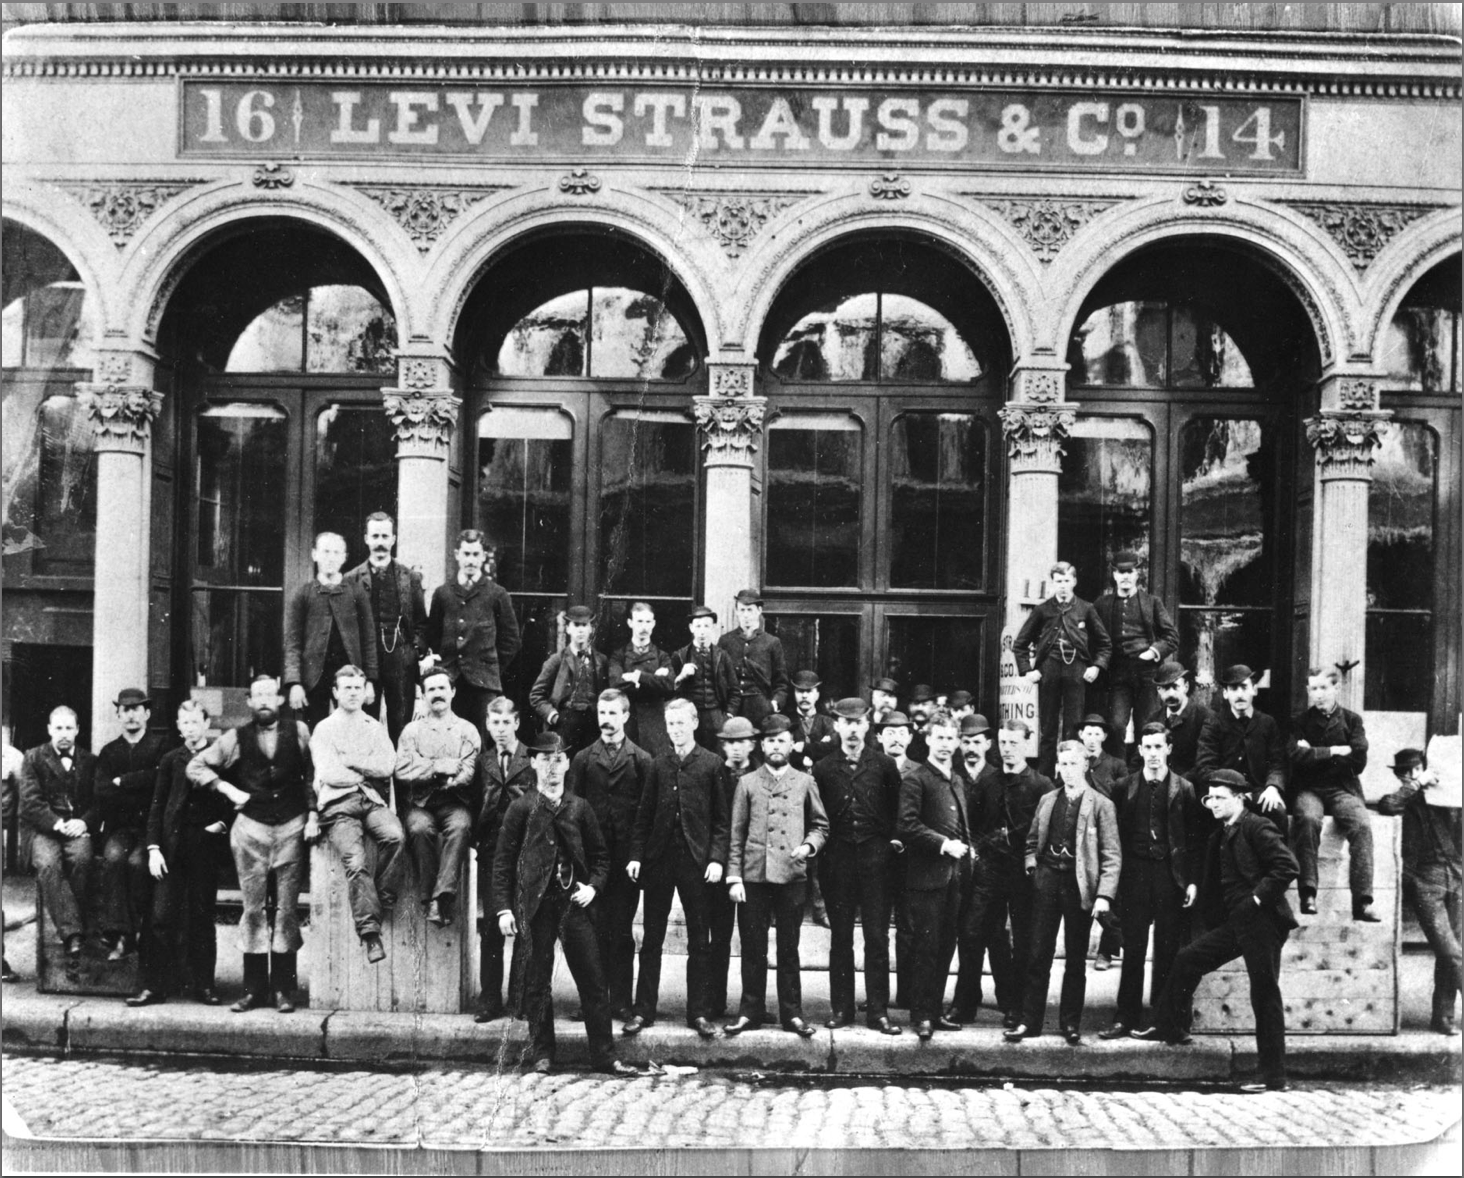 LeviStrauss Co.